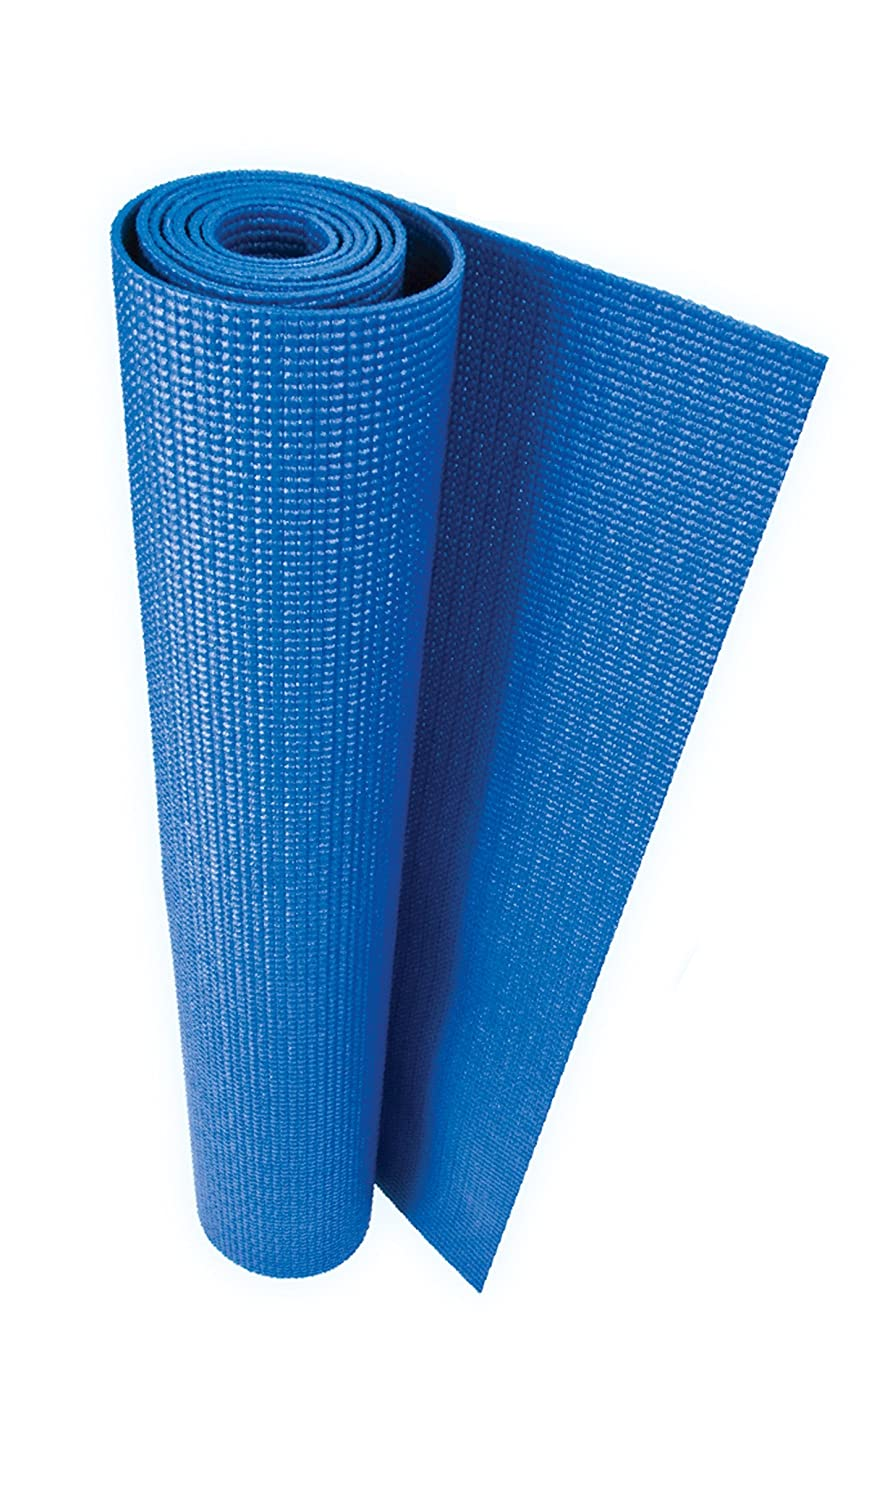 Amazon.com: Universal Foam Yoga Mat for Wii Fit: Video Games